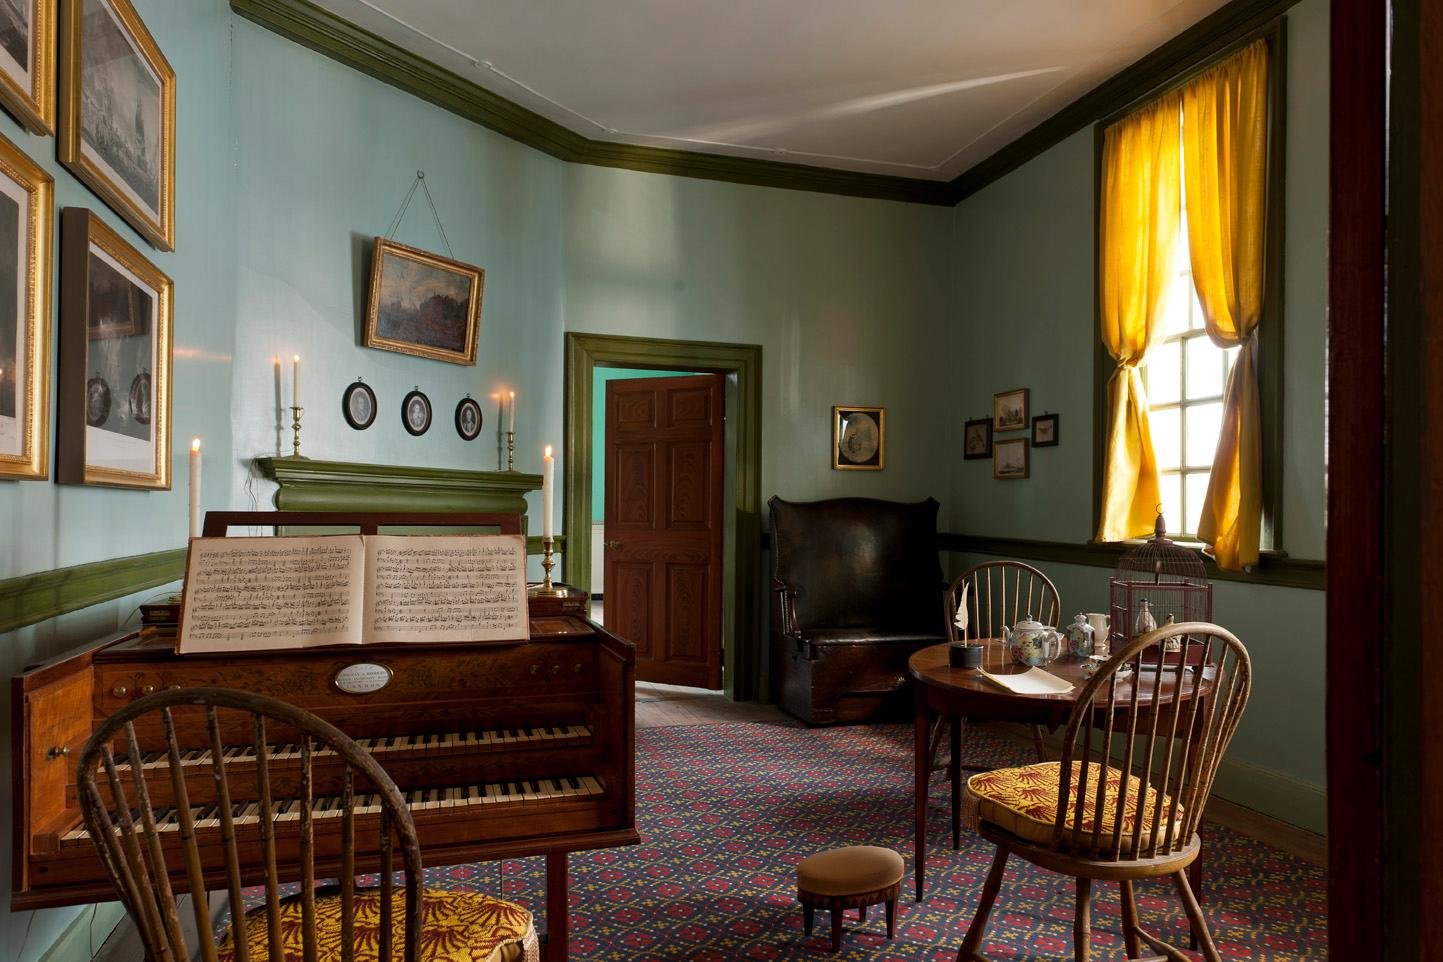 The Little Parlor within the Mount Vernon mansion